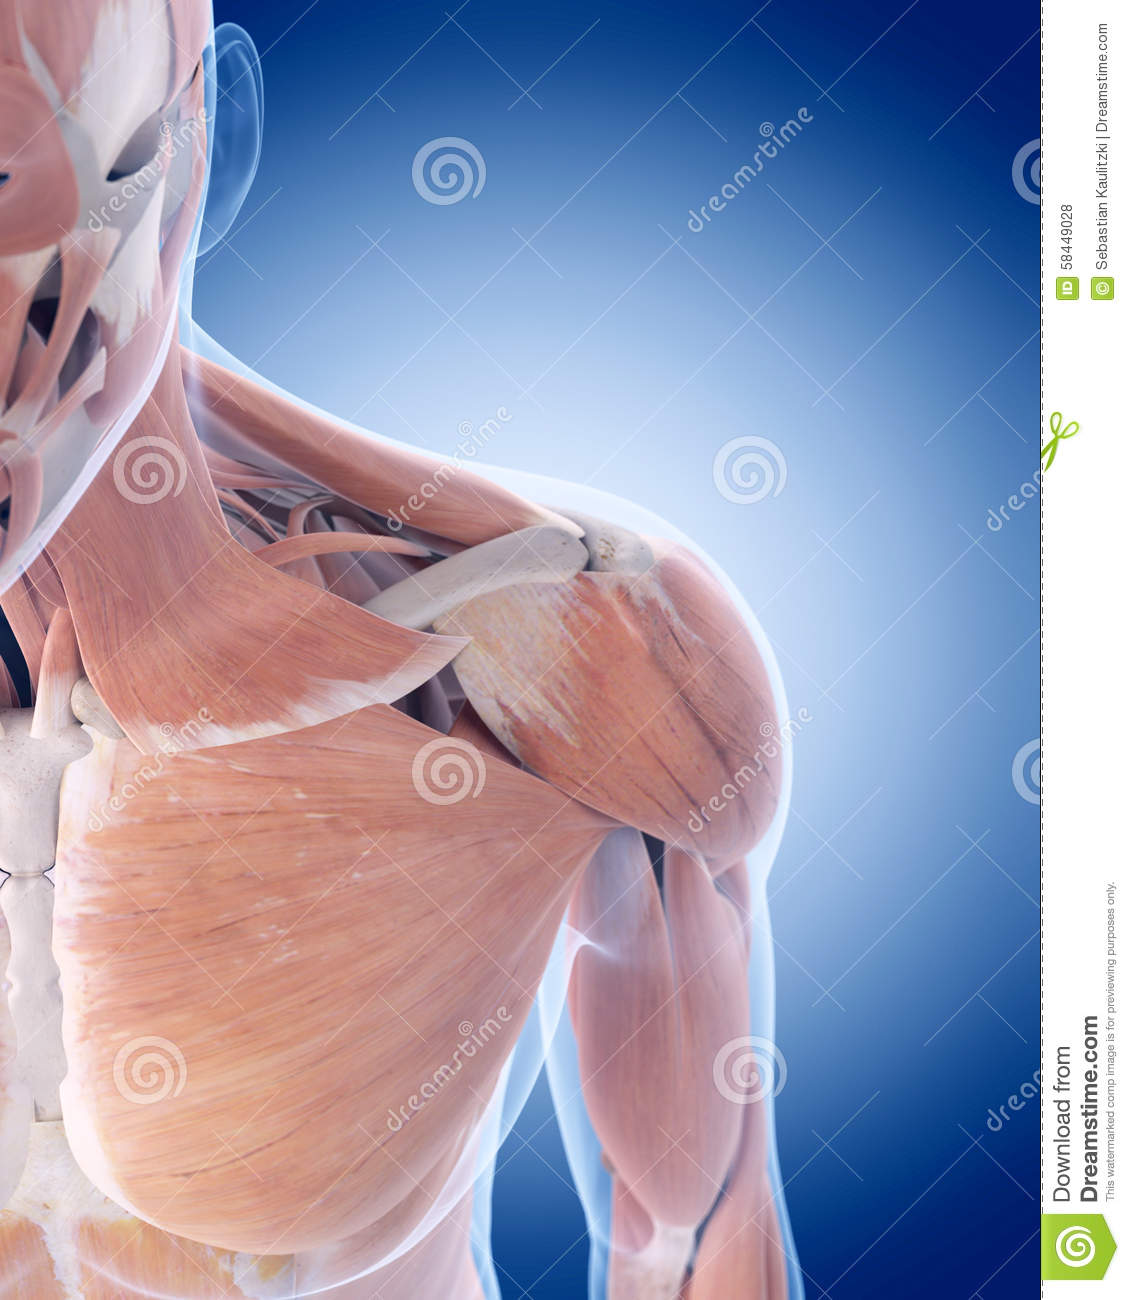 The anterior shoulder muscles